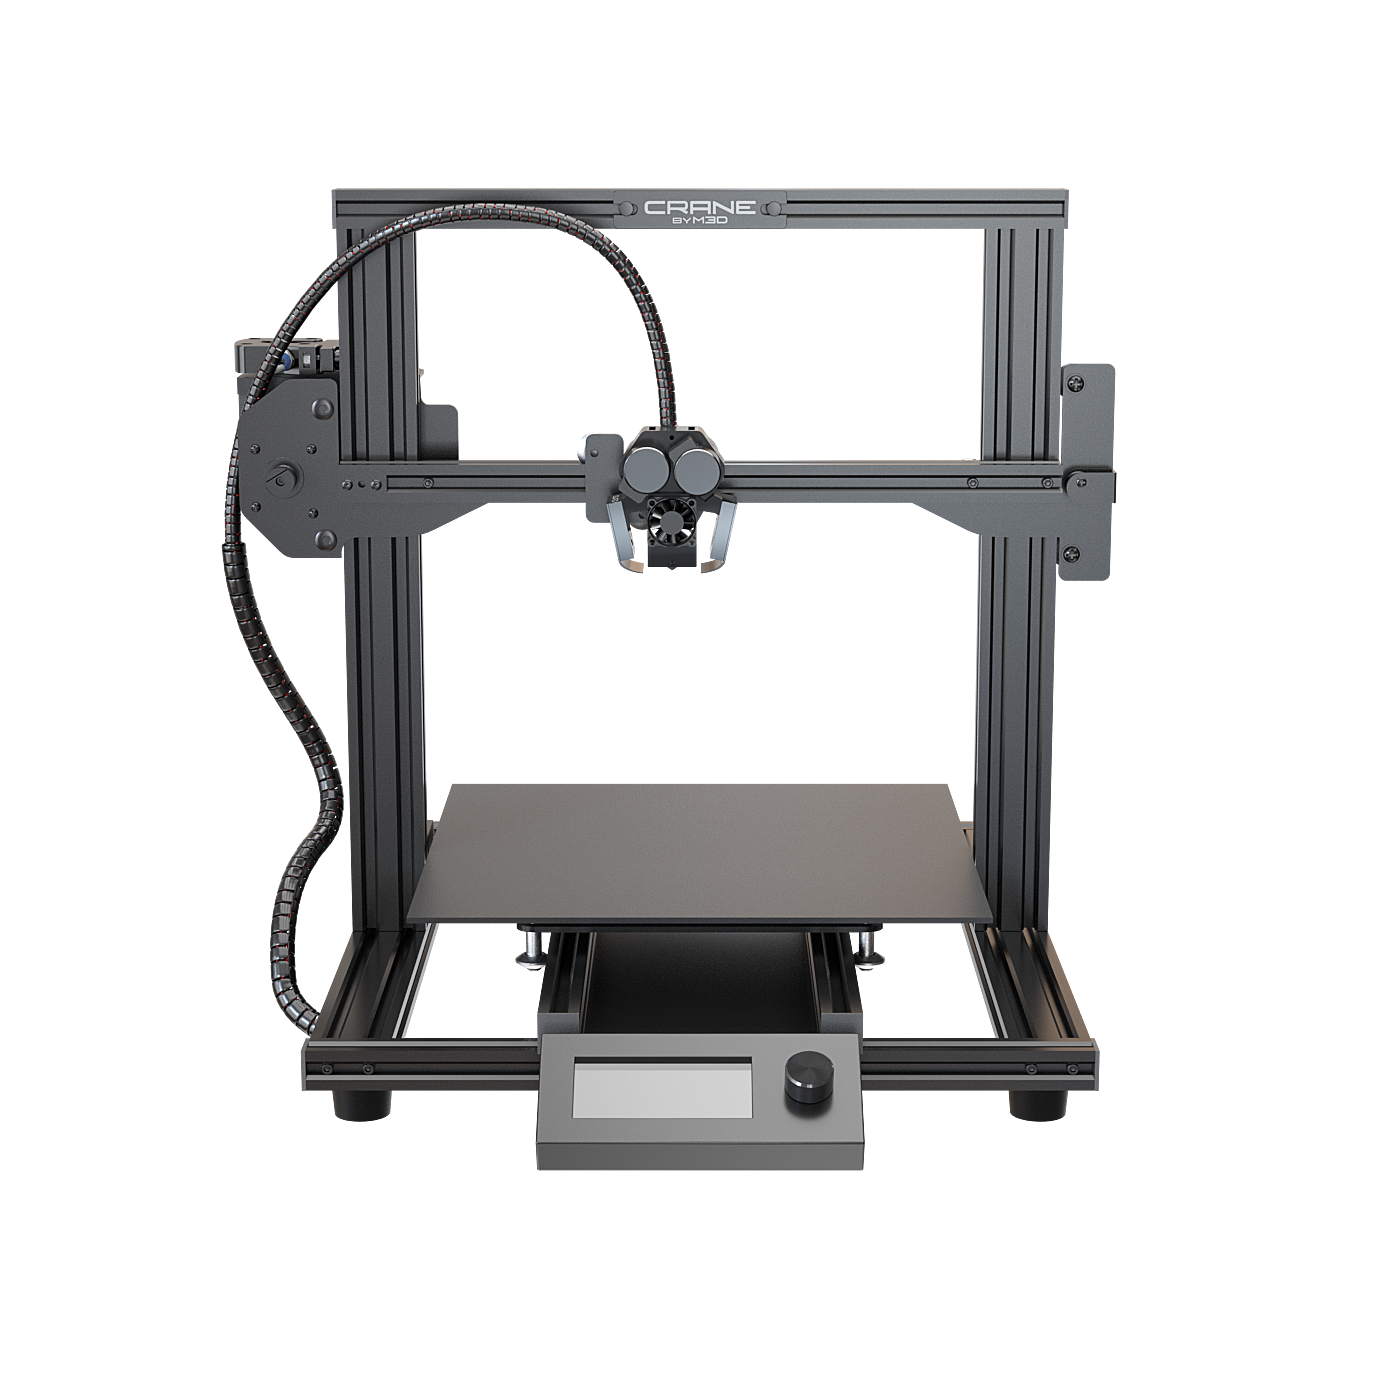 M3D Launches Crane Quad 3D Printer, The World's First Full